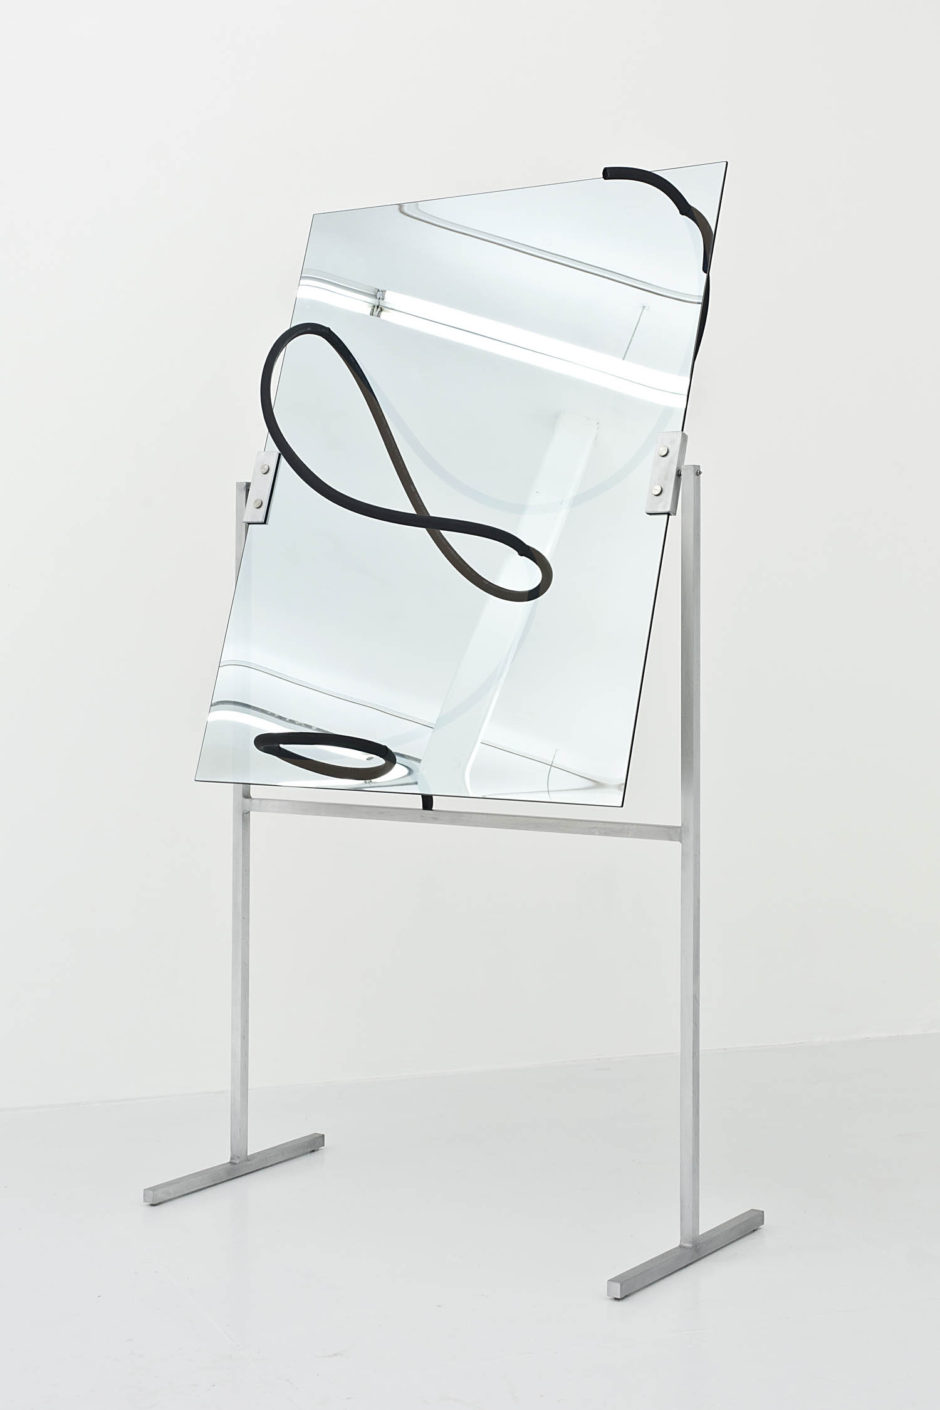 """Censor No.1"", 2015, hose, one way mirror, aluminum armature, 79 x 41.5 x 21 inches, 200.7 x 105.4 x 53.3 cm"